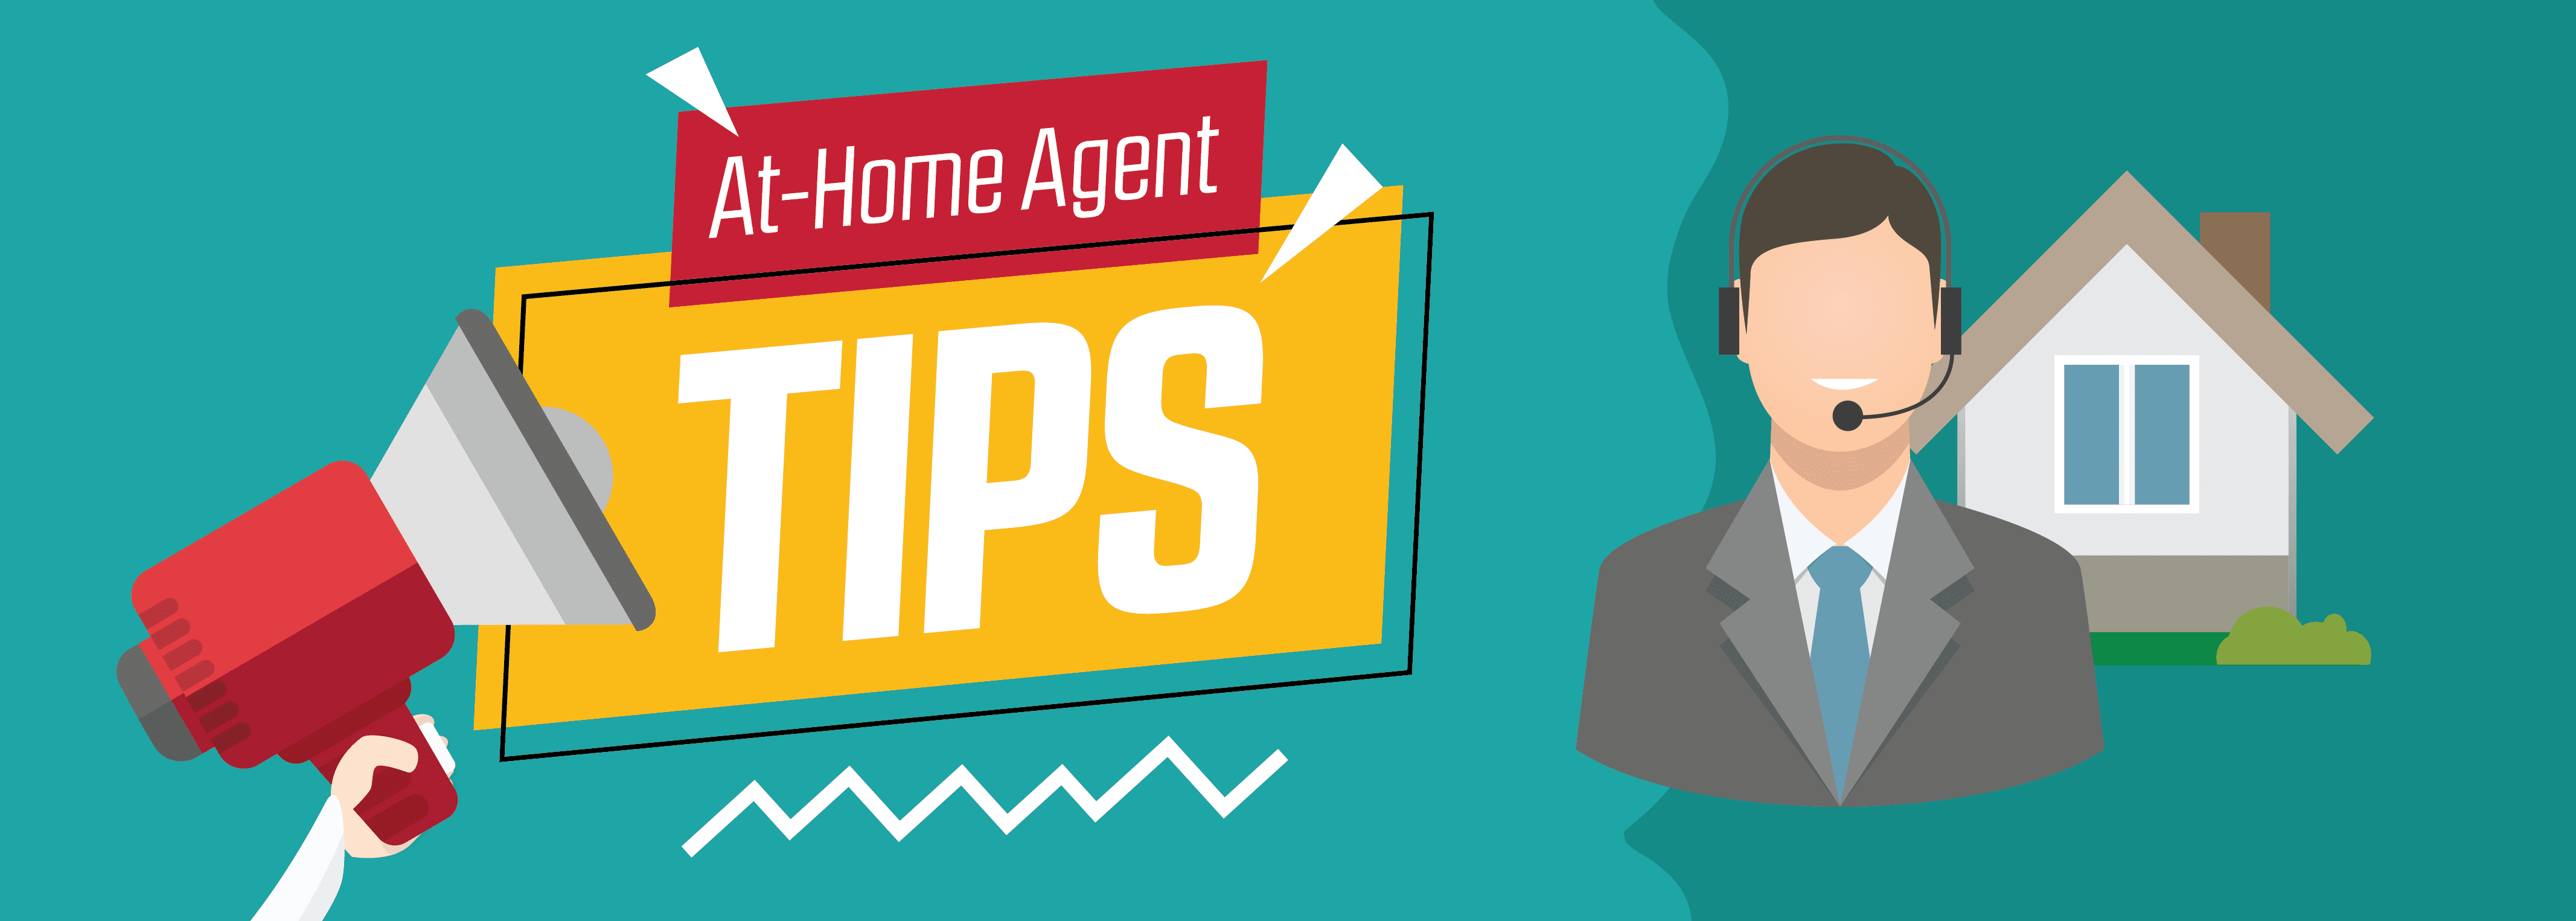 Tips For Call Center Agents Working From Home